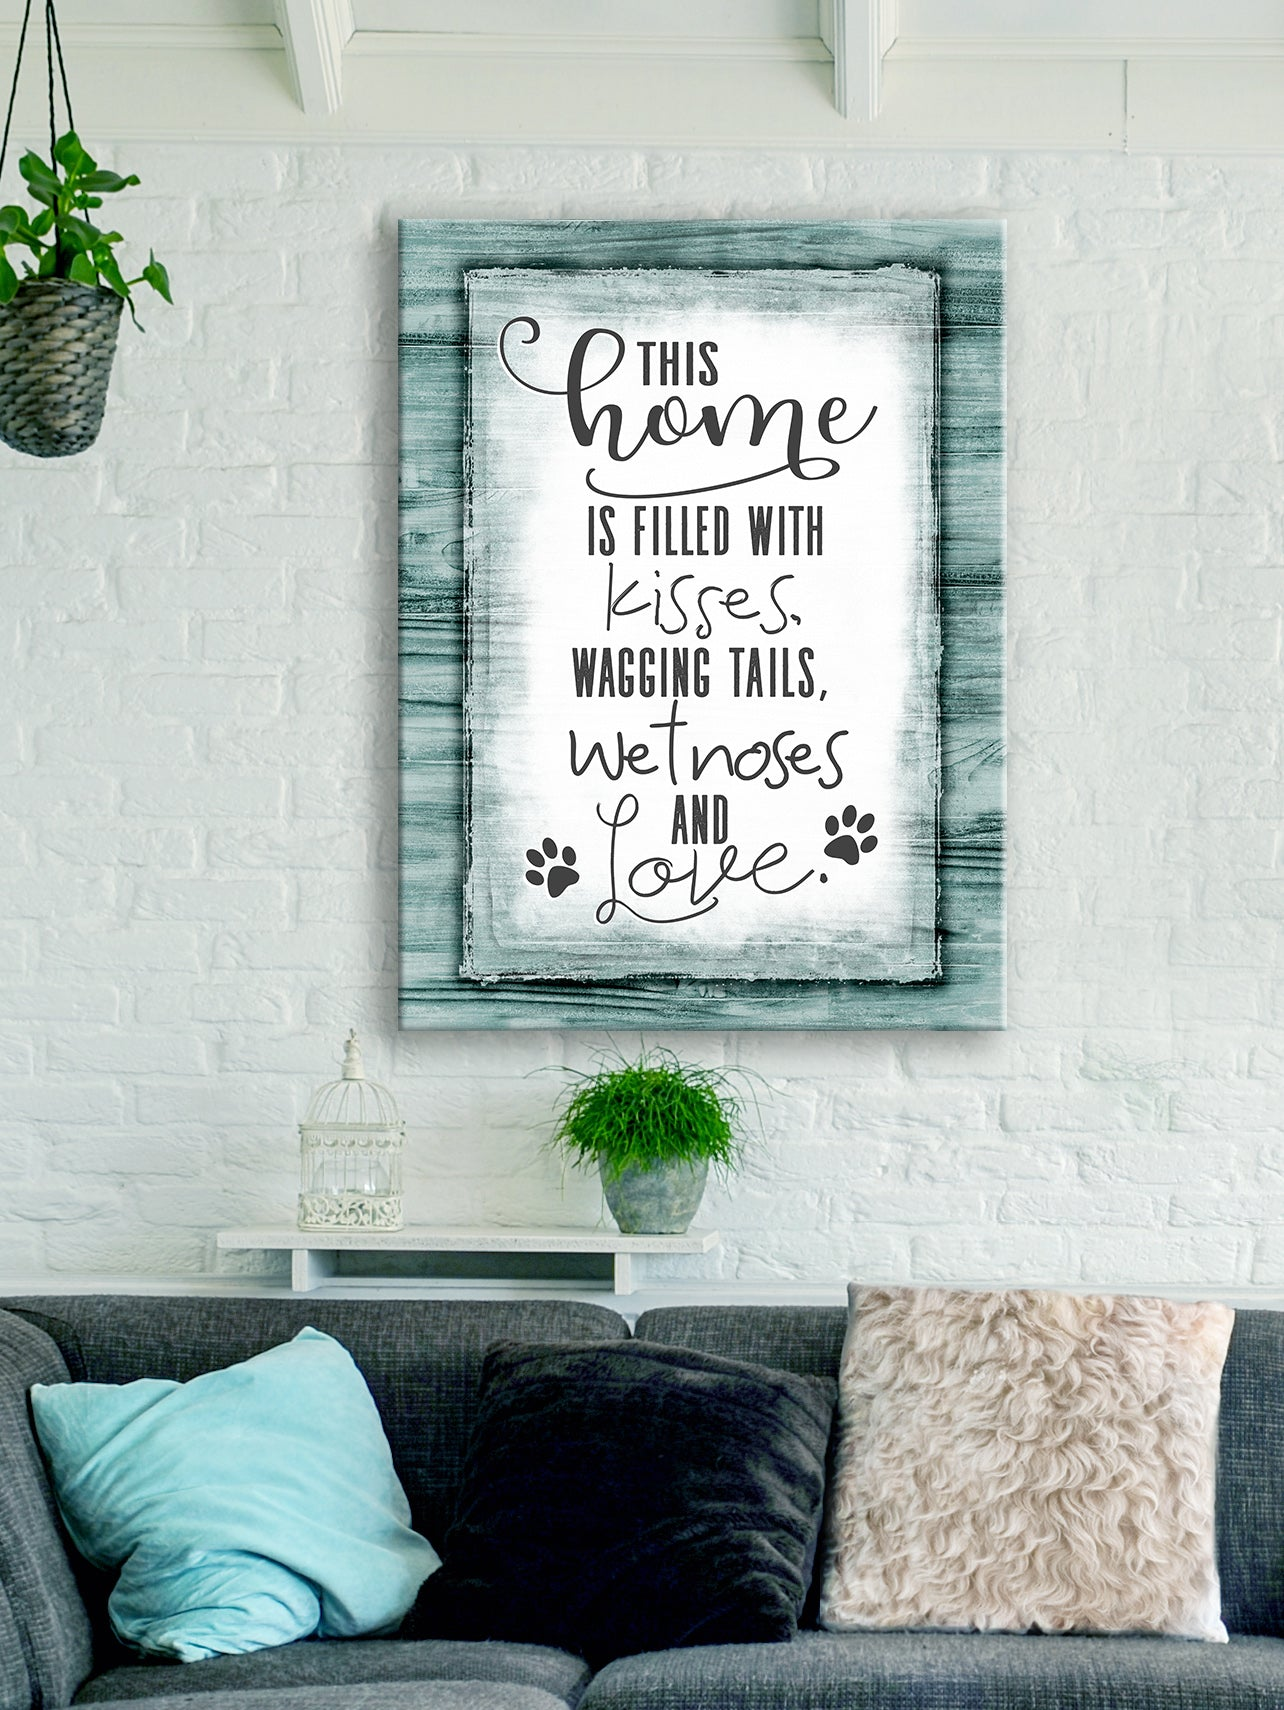 Pet Lovers Wall Art: This Home Is Filled With Kisses V2 (Wood Frame Ready To Hang)